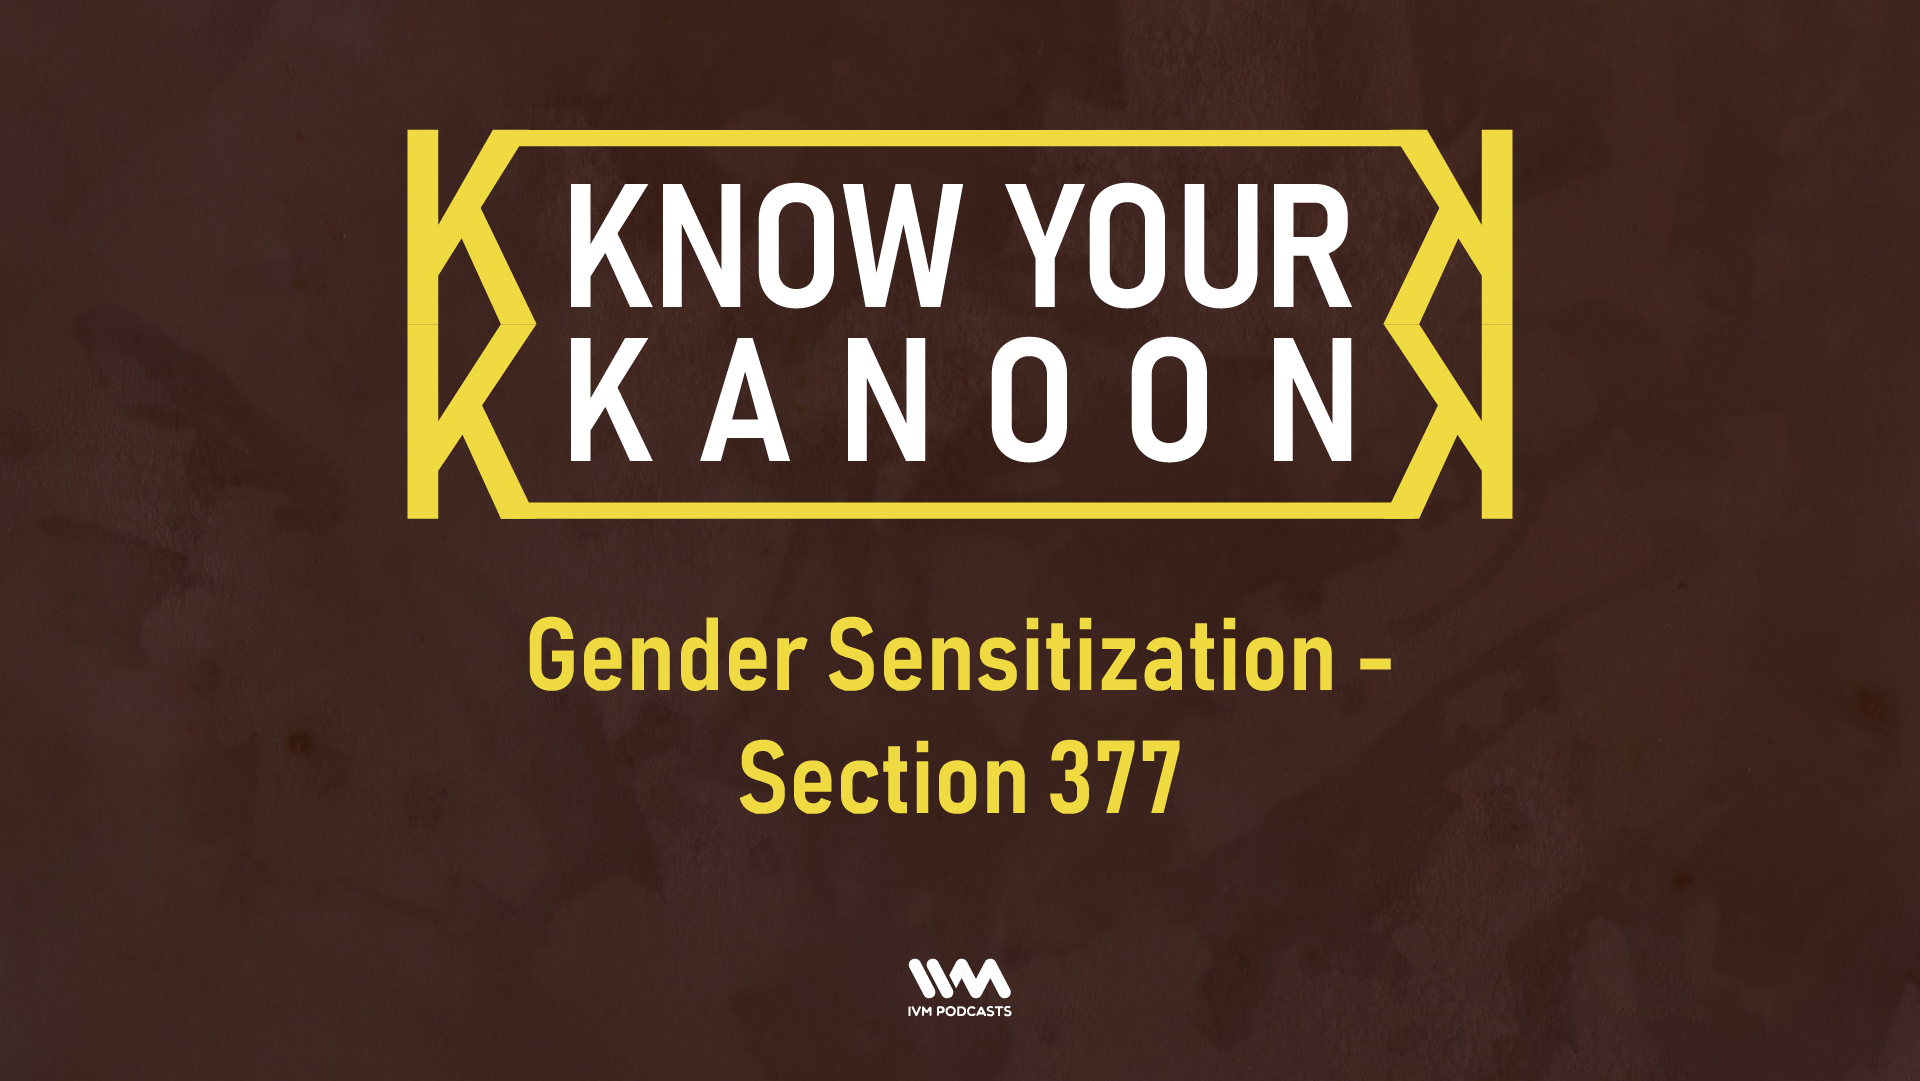 KnowYourKanoonEpisode08.png